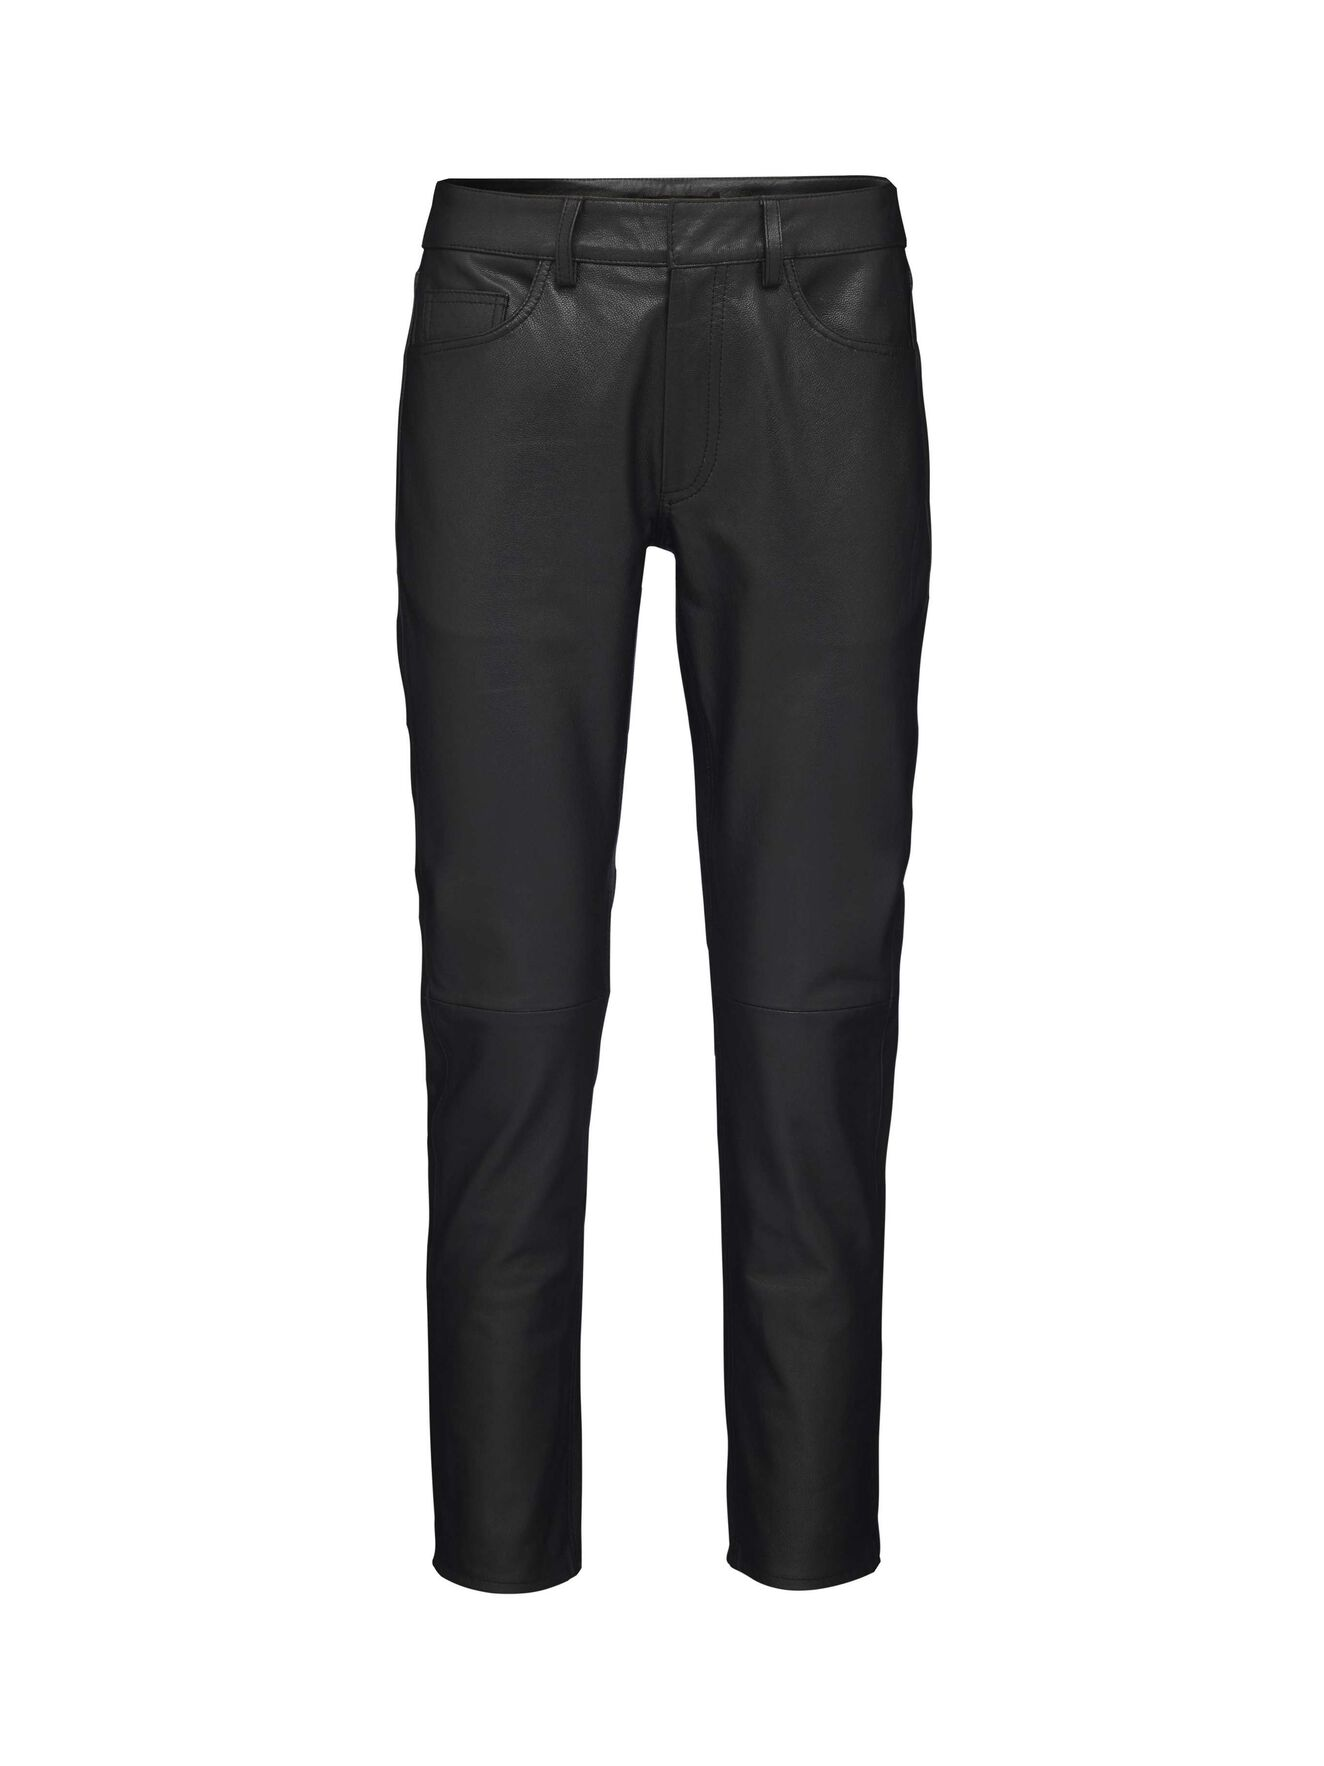 Blade leather trousers in Black from Tiger of Sweden